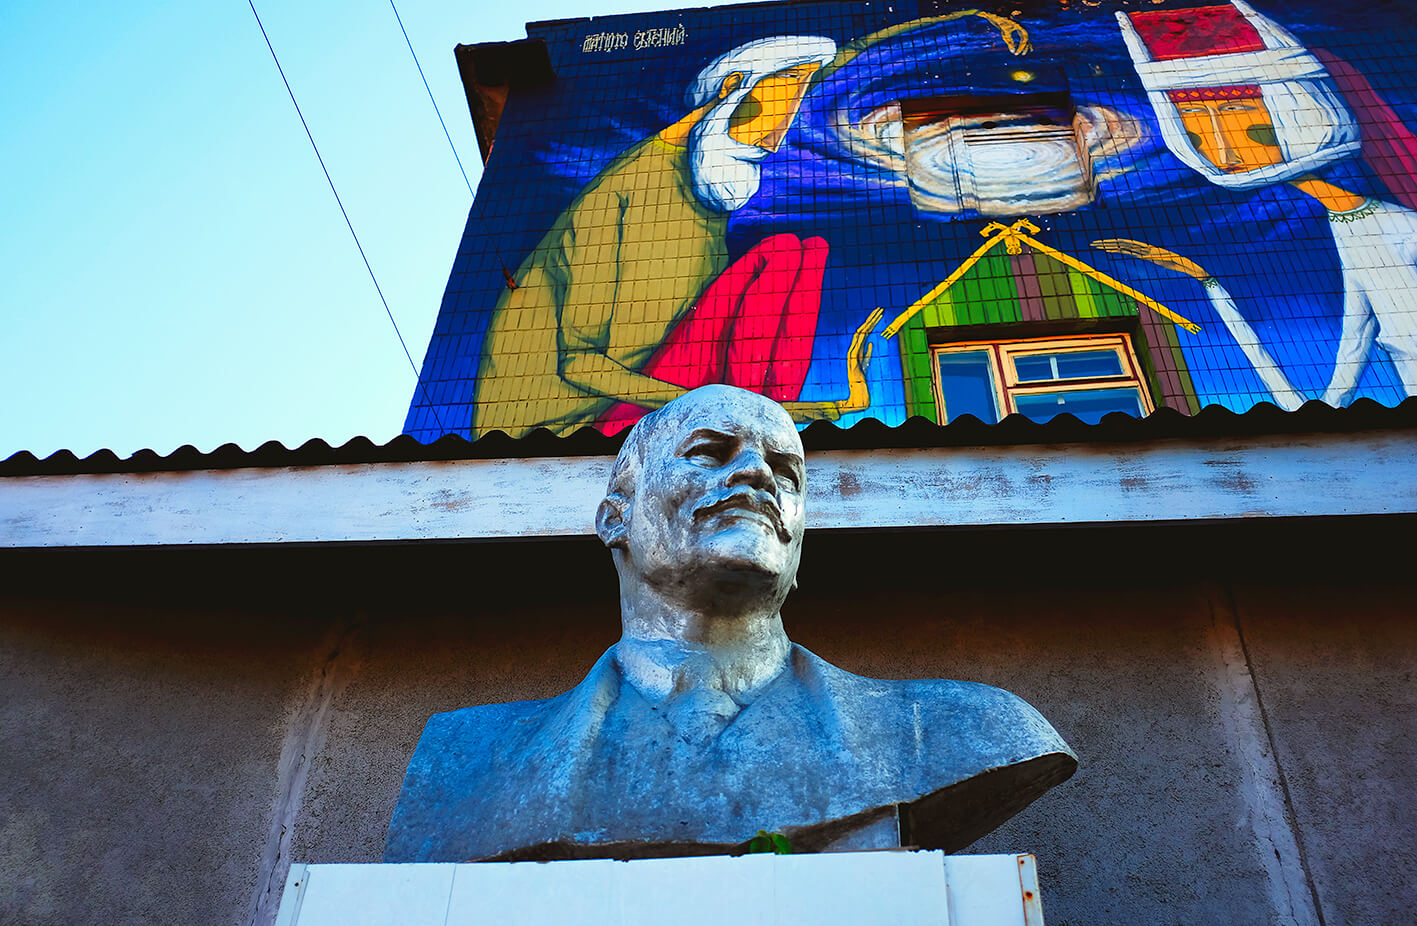 Lenin statue and street art in Minsk